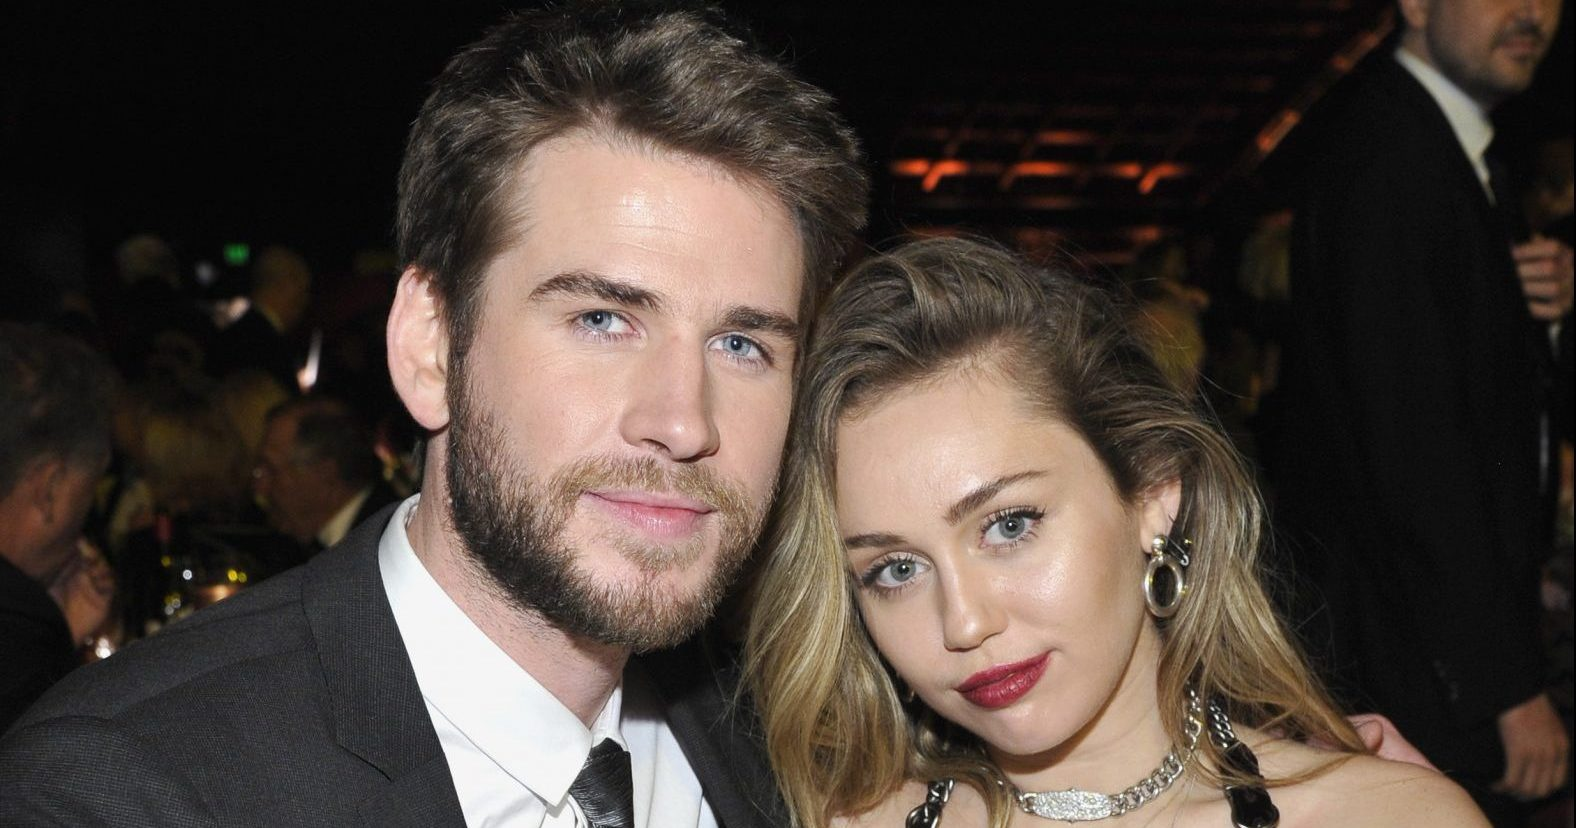 OMG: Liam Hemsworth Reveals Why He and Miley Cyrus Decided to Finally Tie the Knot!